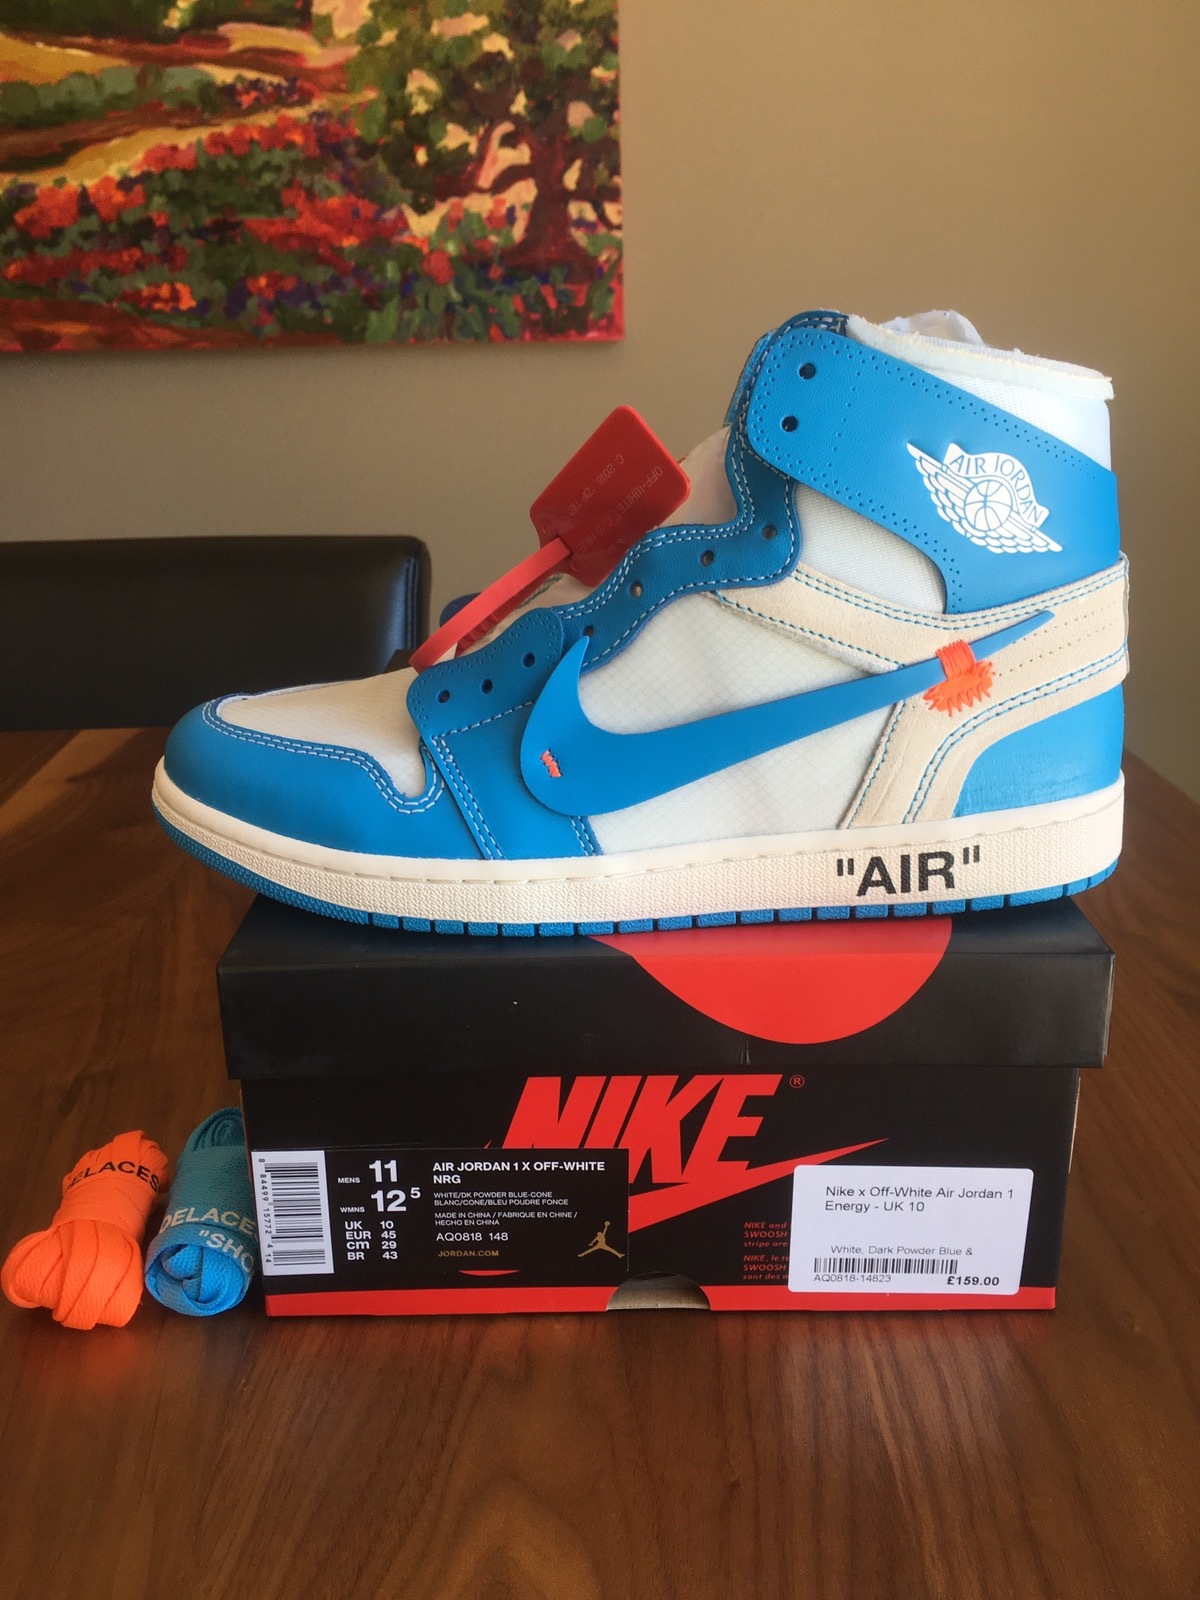 39bcba806df855 Nike Nike Off-White UNC Jordan 1 University Blue LAST DROP Size 11 - Hi-Top  Sneakers for Sale - Grailed